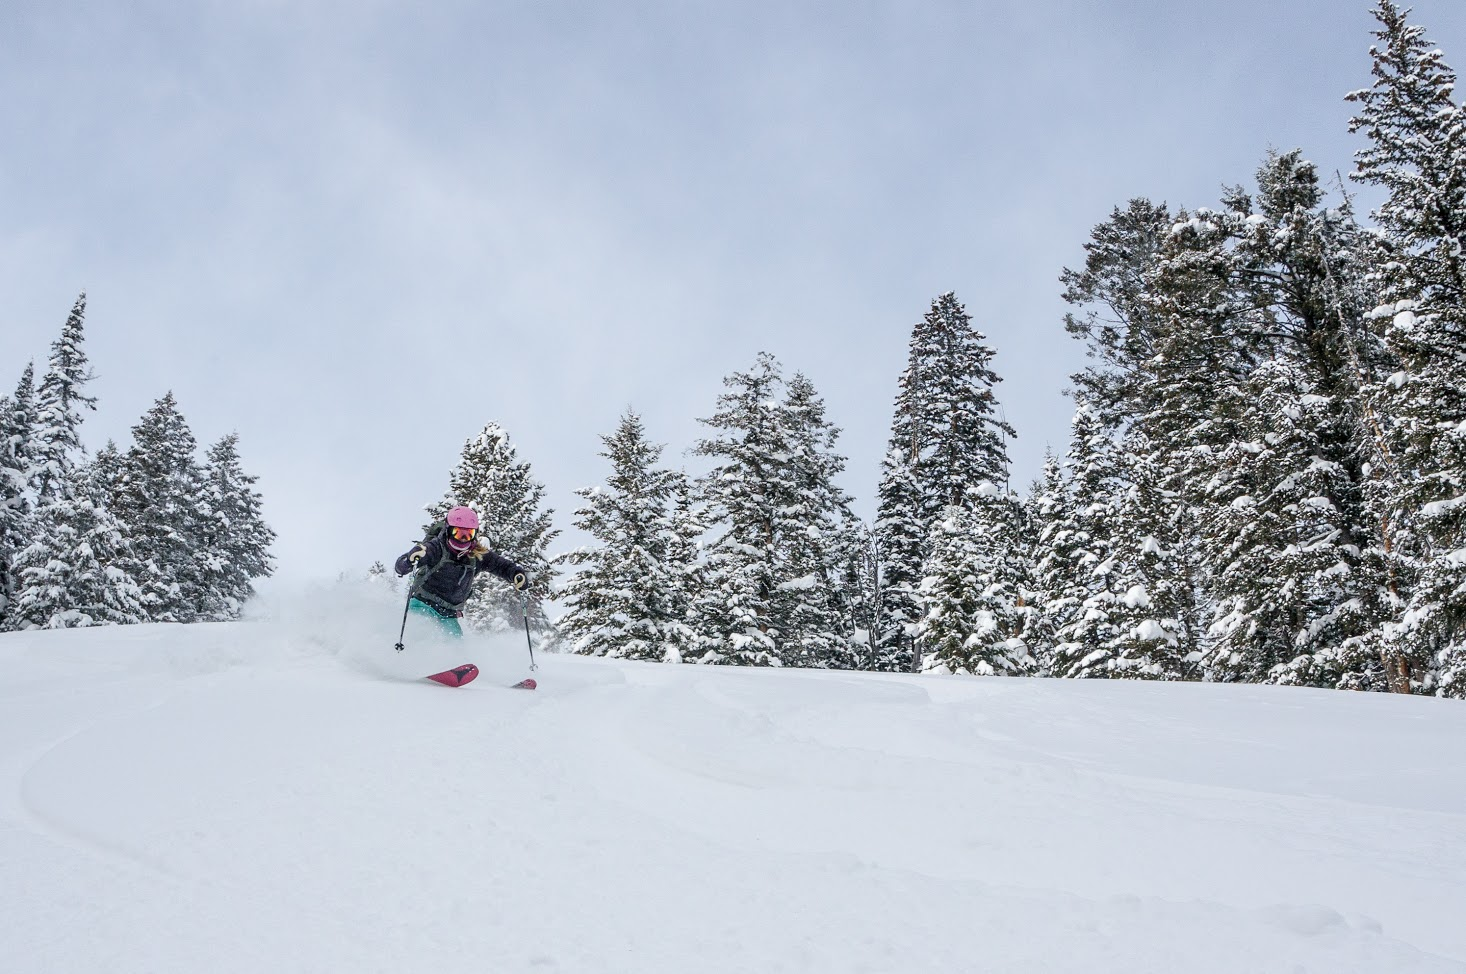 Ski Yellowstone Park, just minutes from Big Sky!